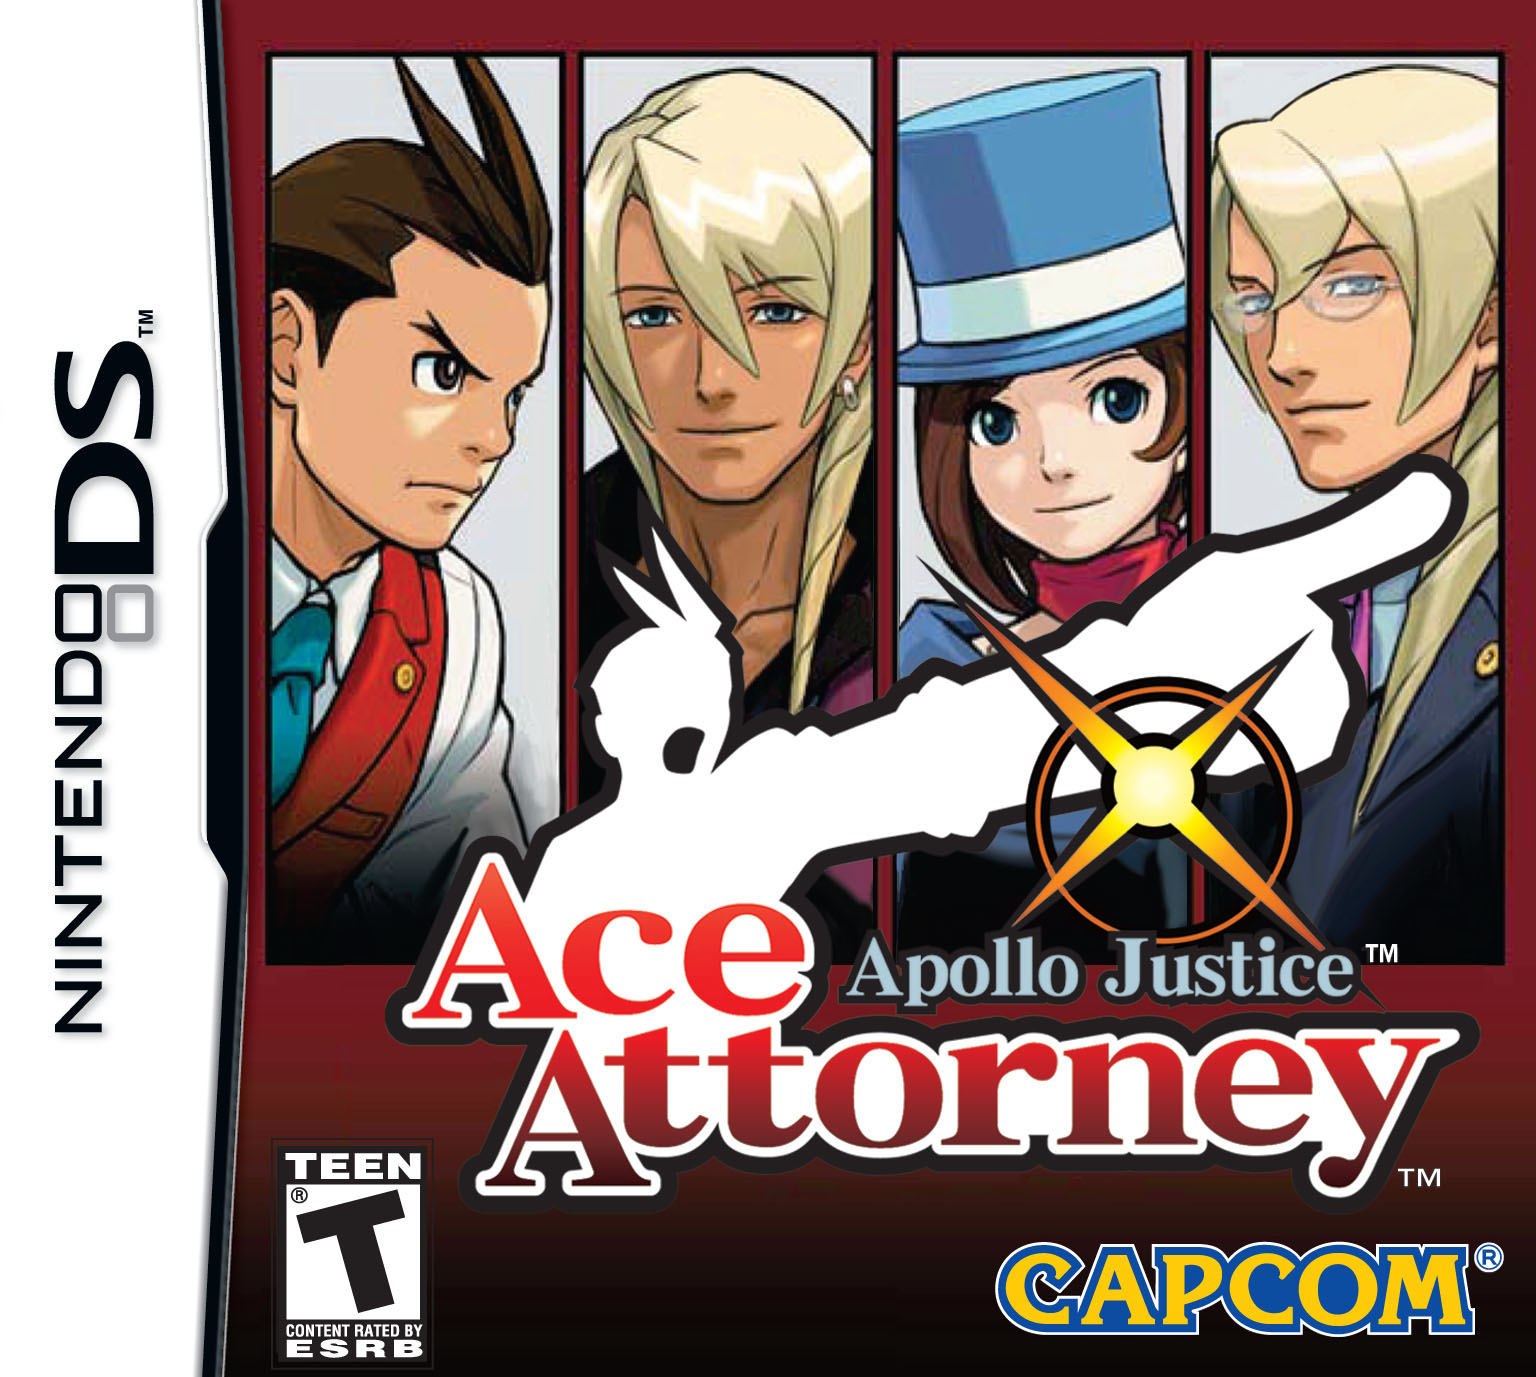 Apollo Justice Ace Attorney Extra Life